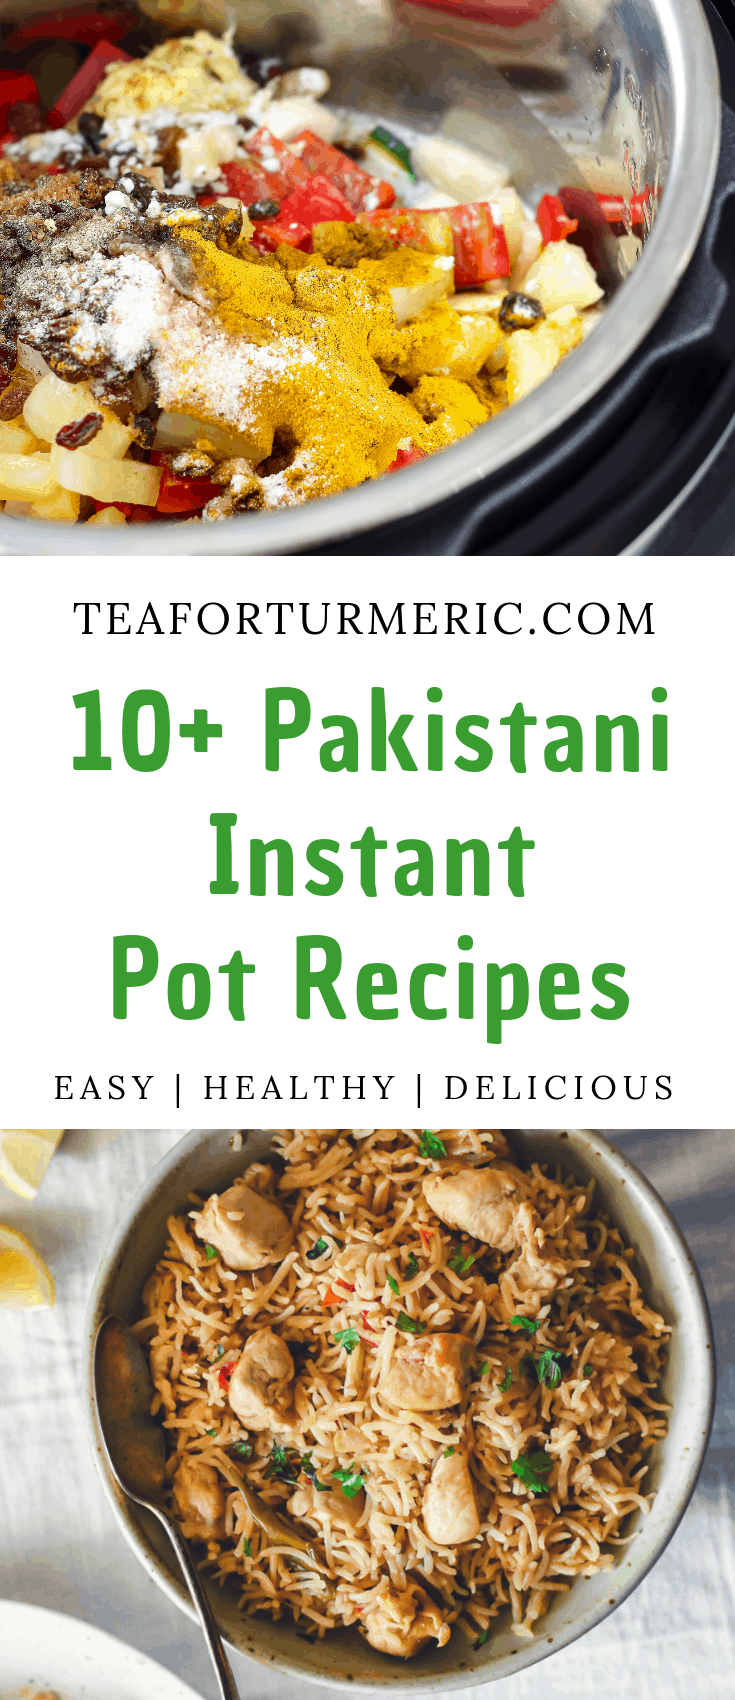 10+ Easy Pakistani Instant Pot recipes that are perfect for every day! These tried-and-tested recipes are delicious, healthy, and 100% delicious.